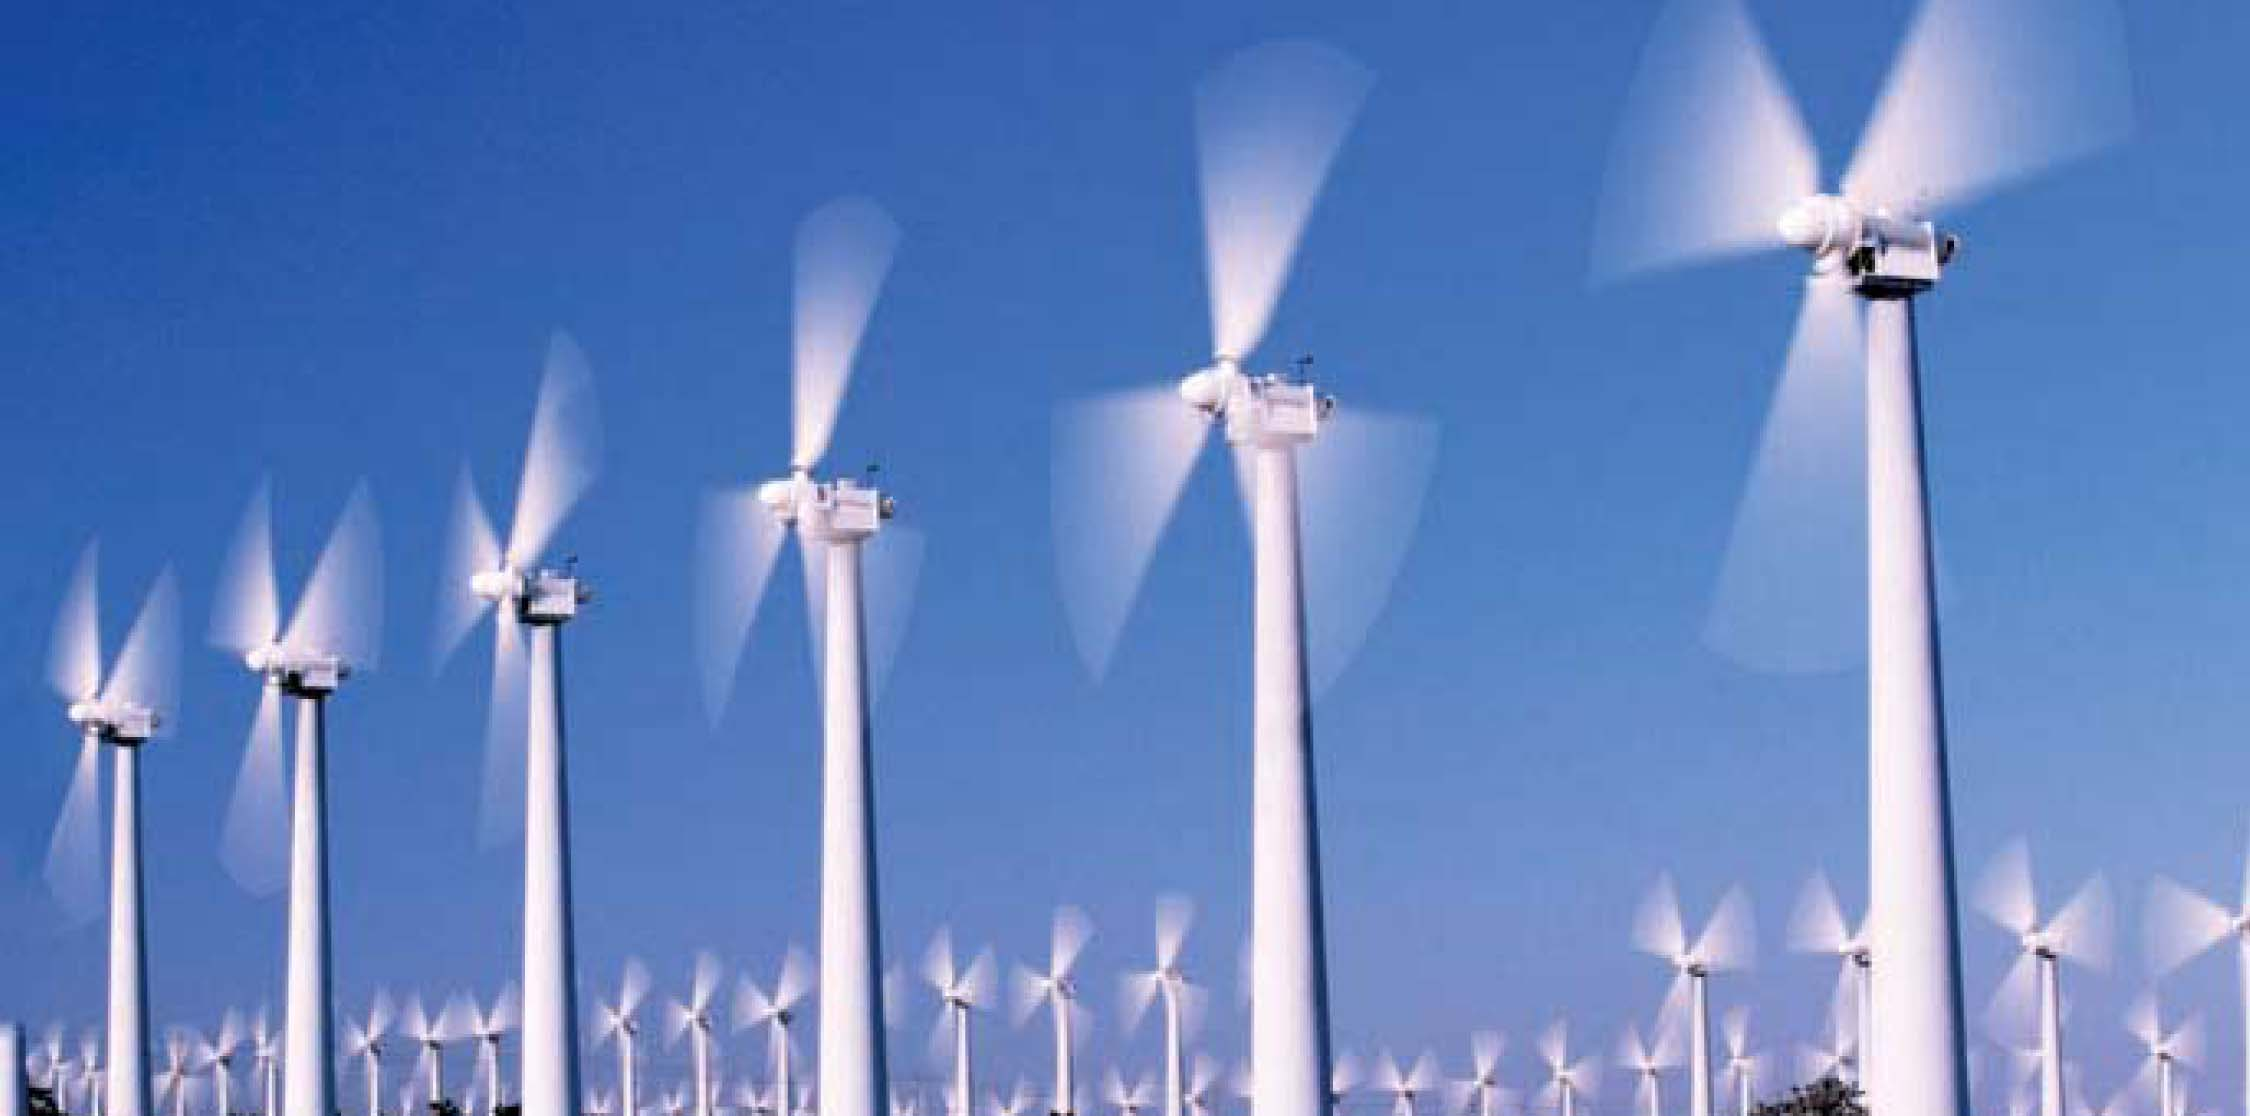 ... to contract with wind turbine companies along the Texas coastline